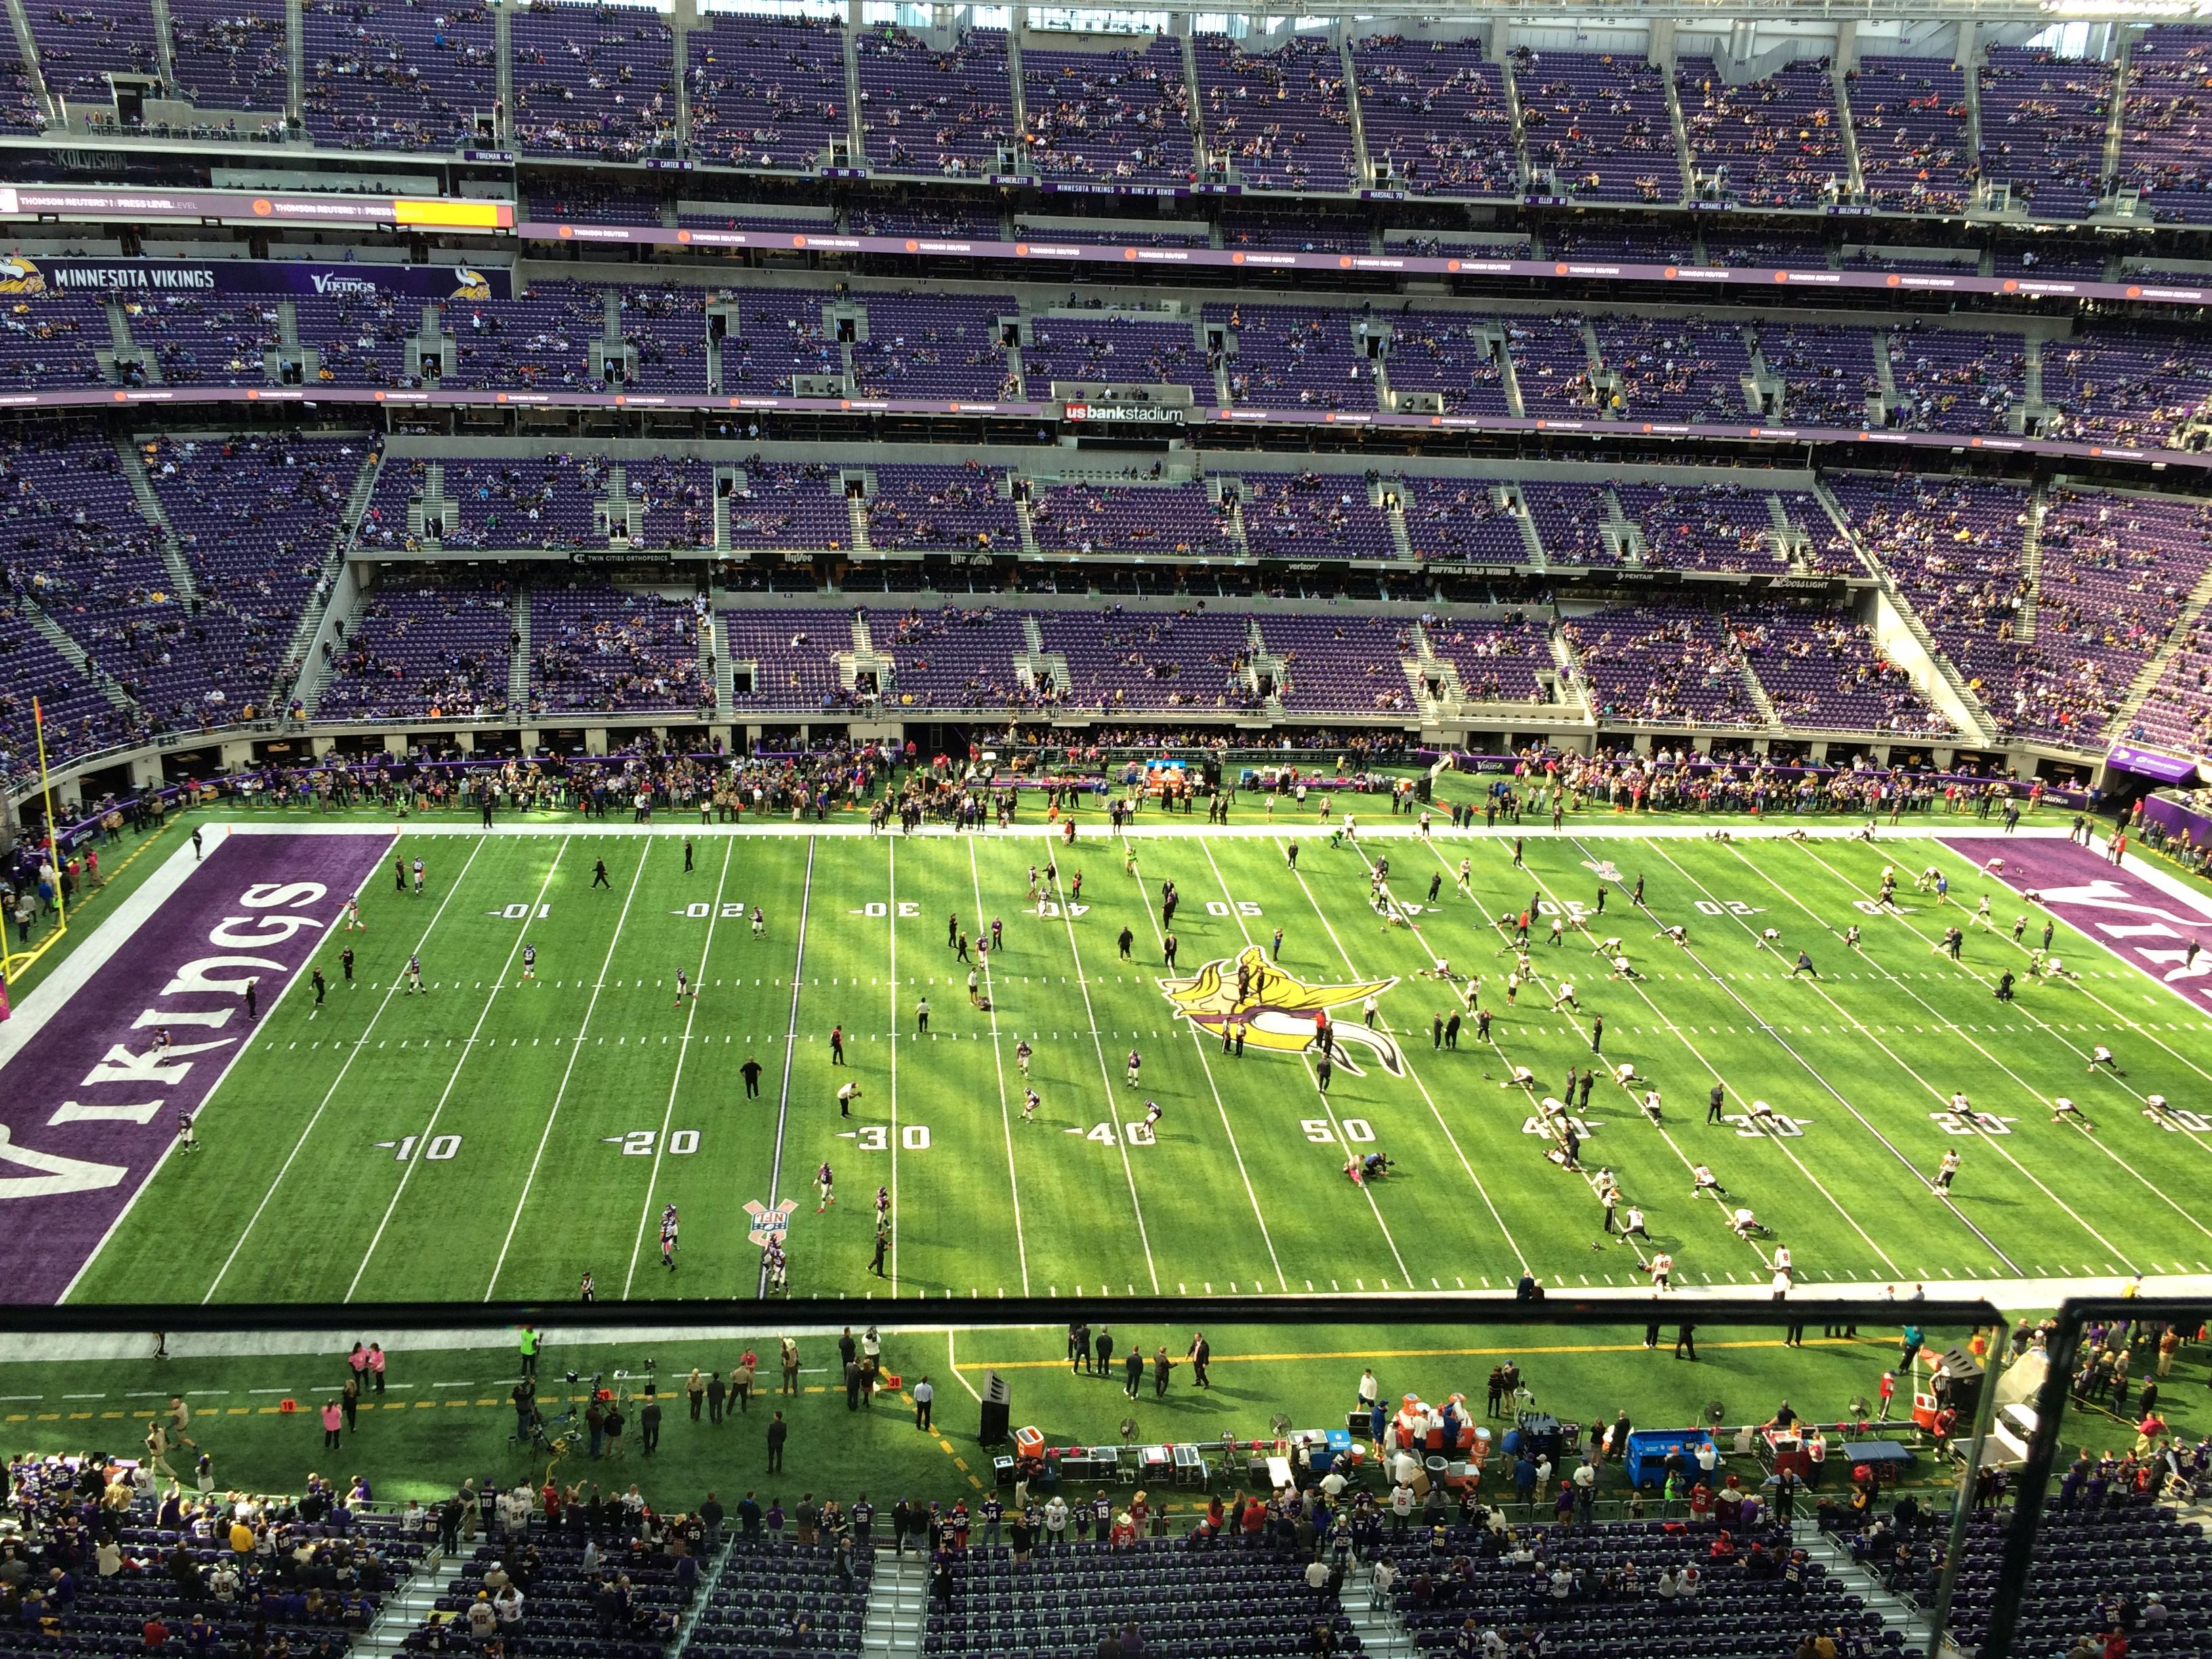 U.S. Bank Stadium Section 313 Row 1 Seat 17